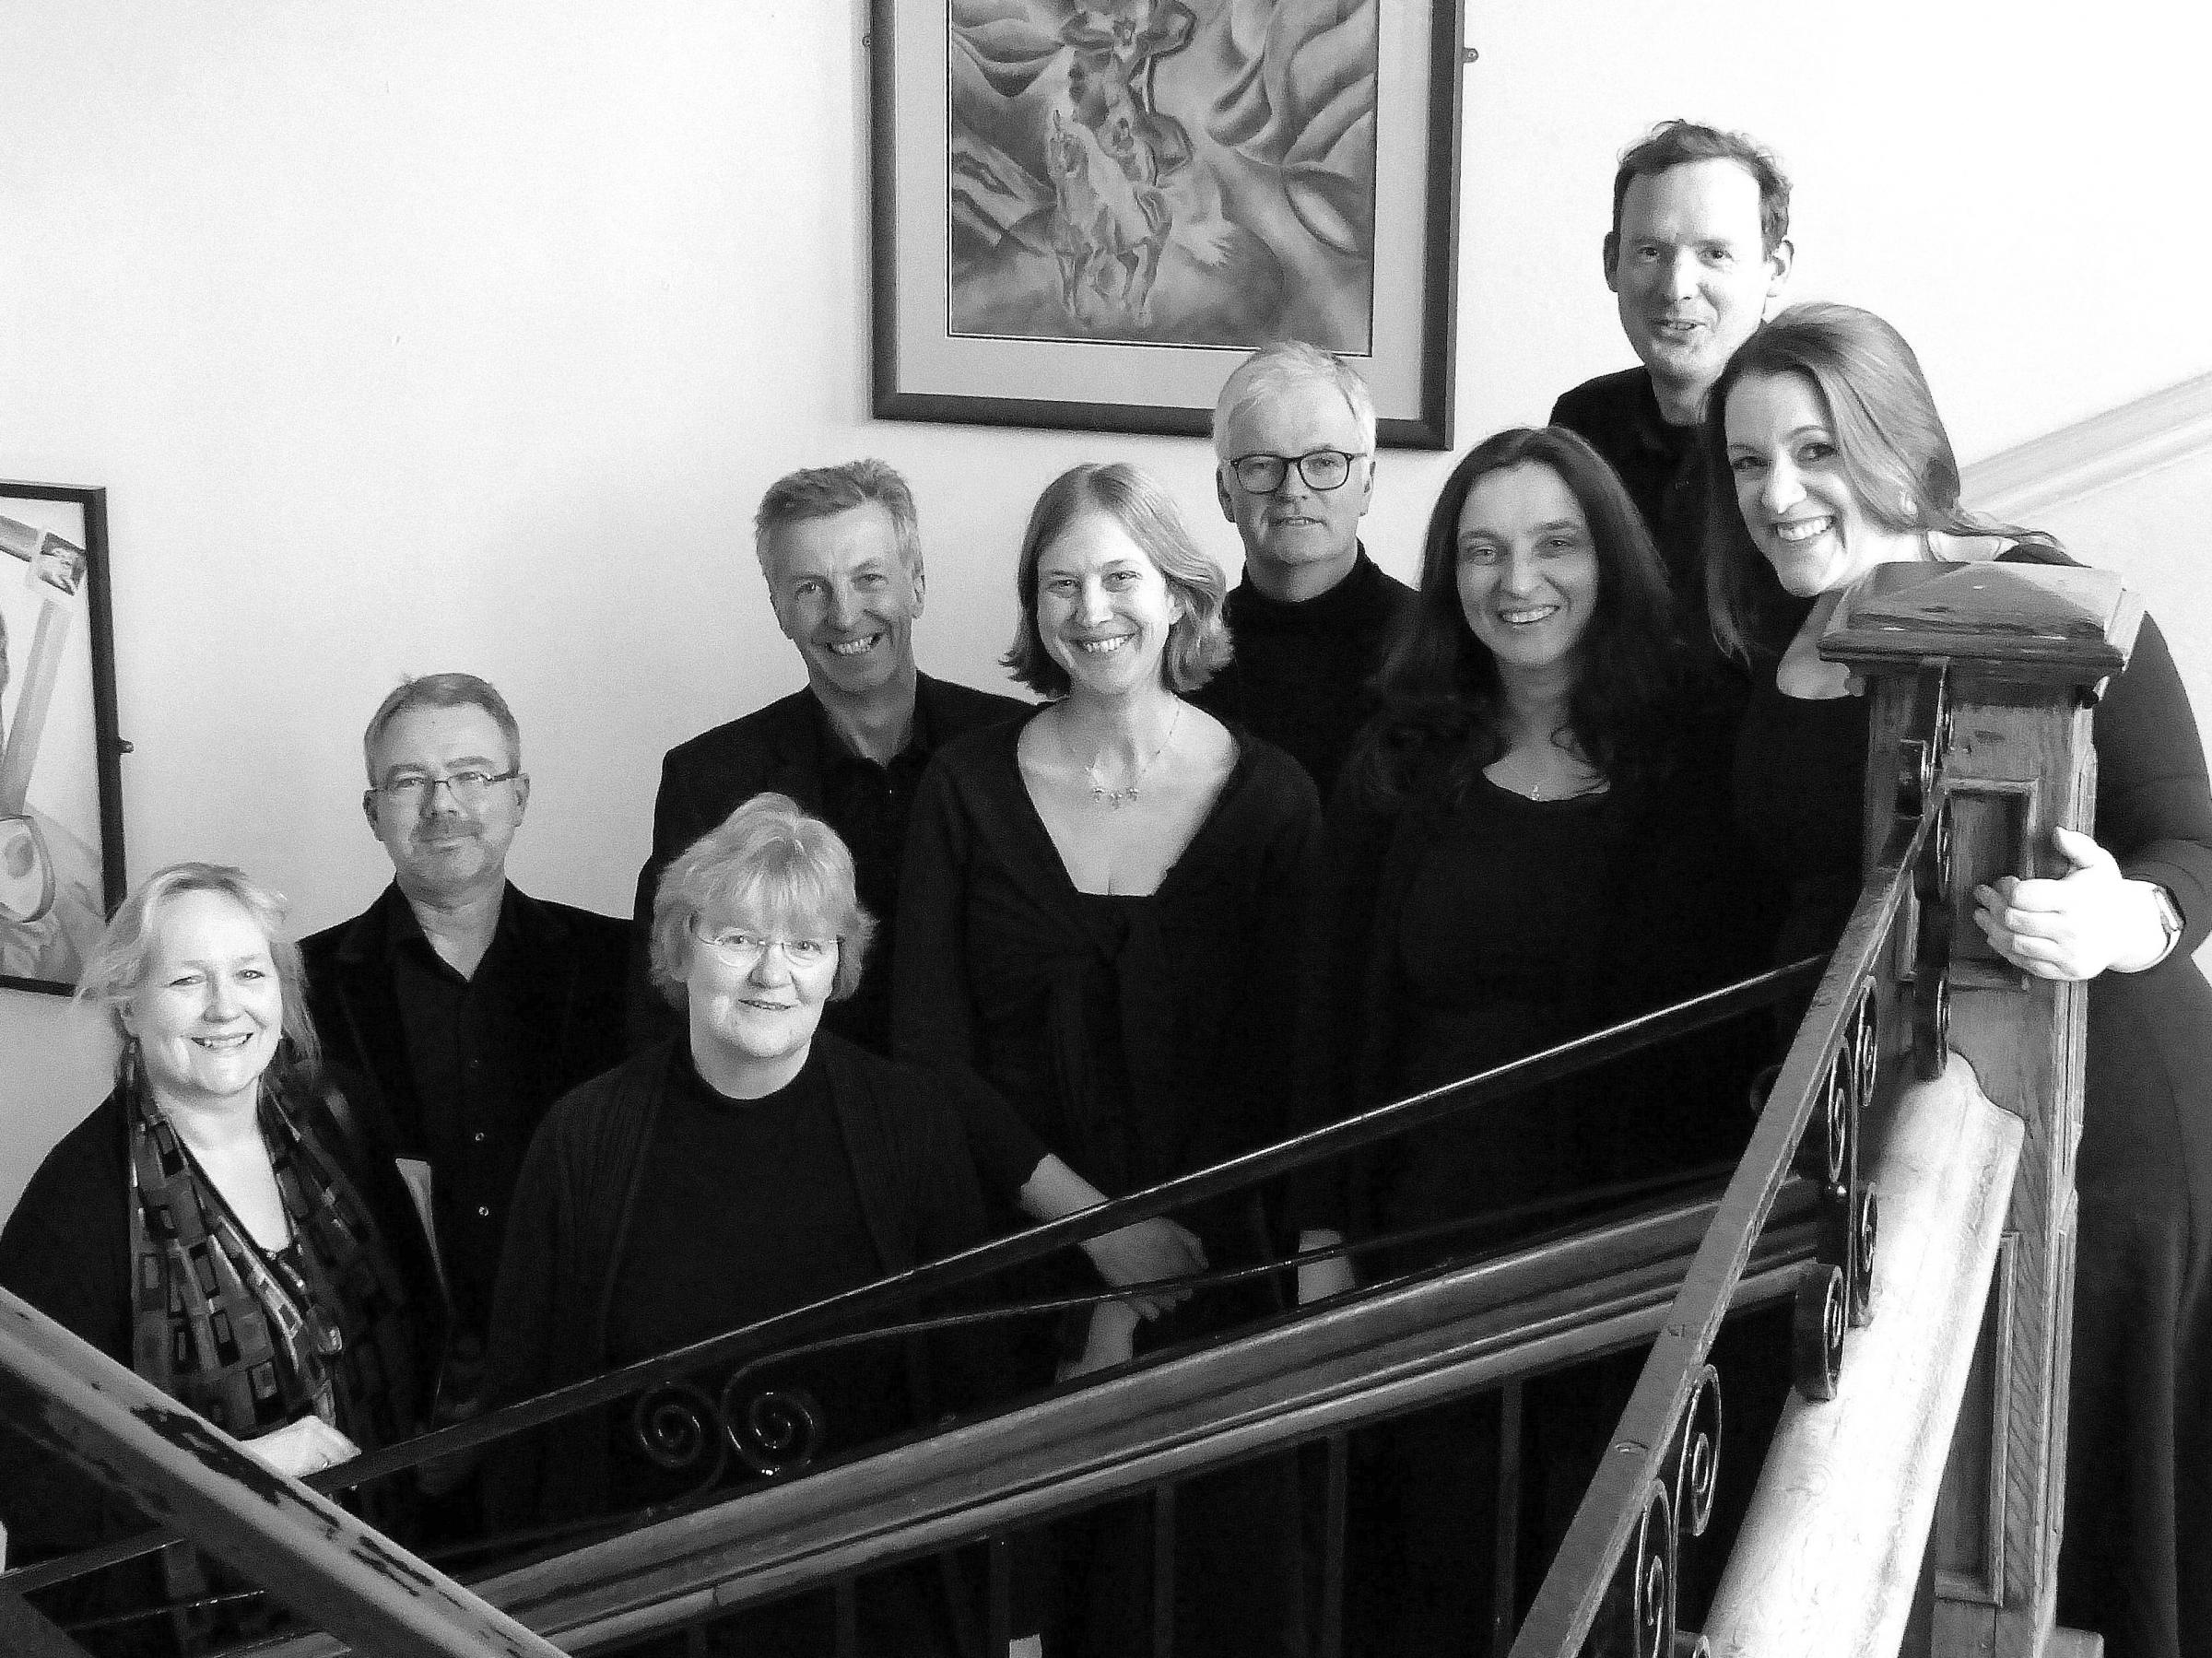 Tickets on sale for Herdwyck Consort concert in aid of St John's Church, Levens, renovation fund